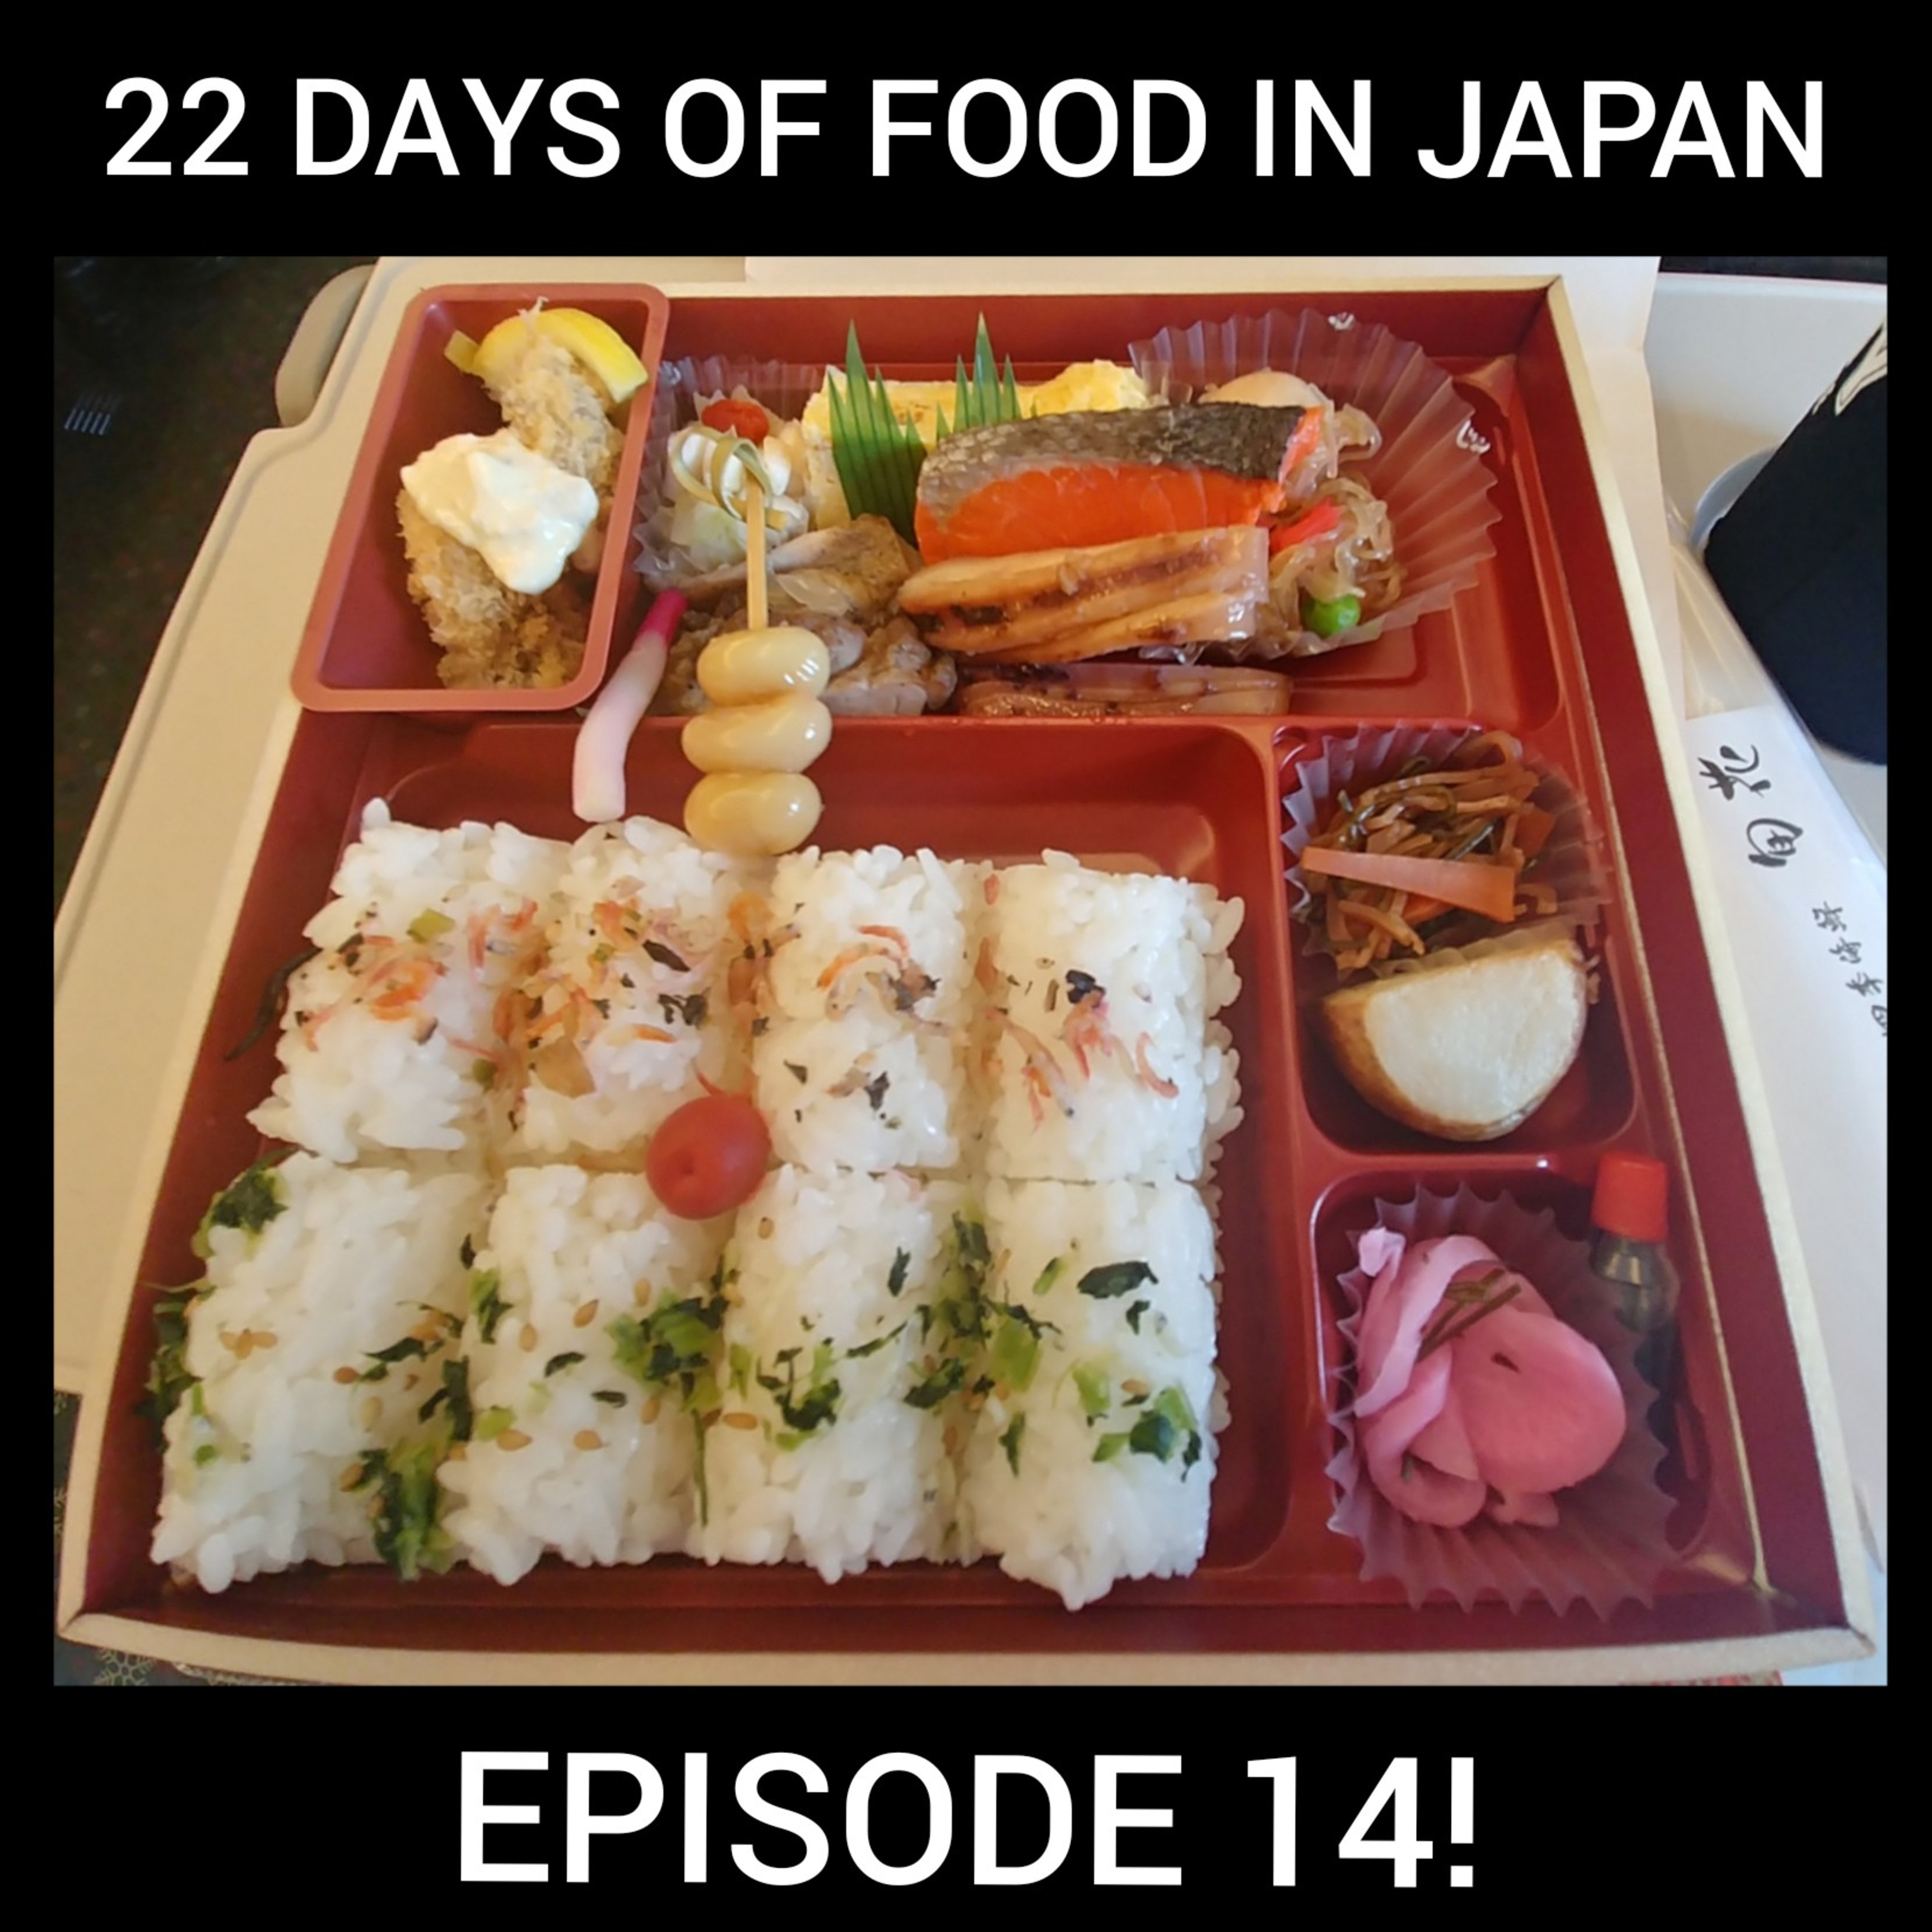 Ep 14: 22 Days of Food in Japan